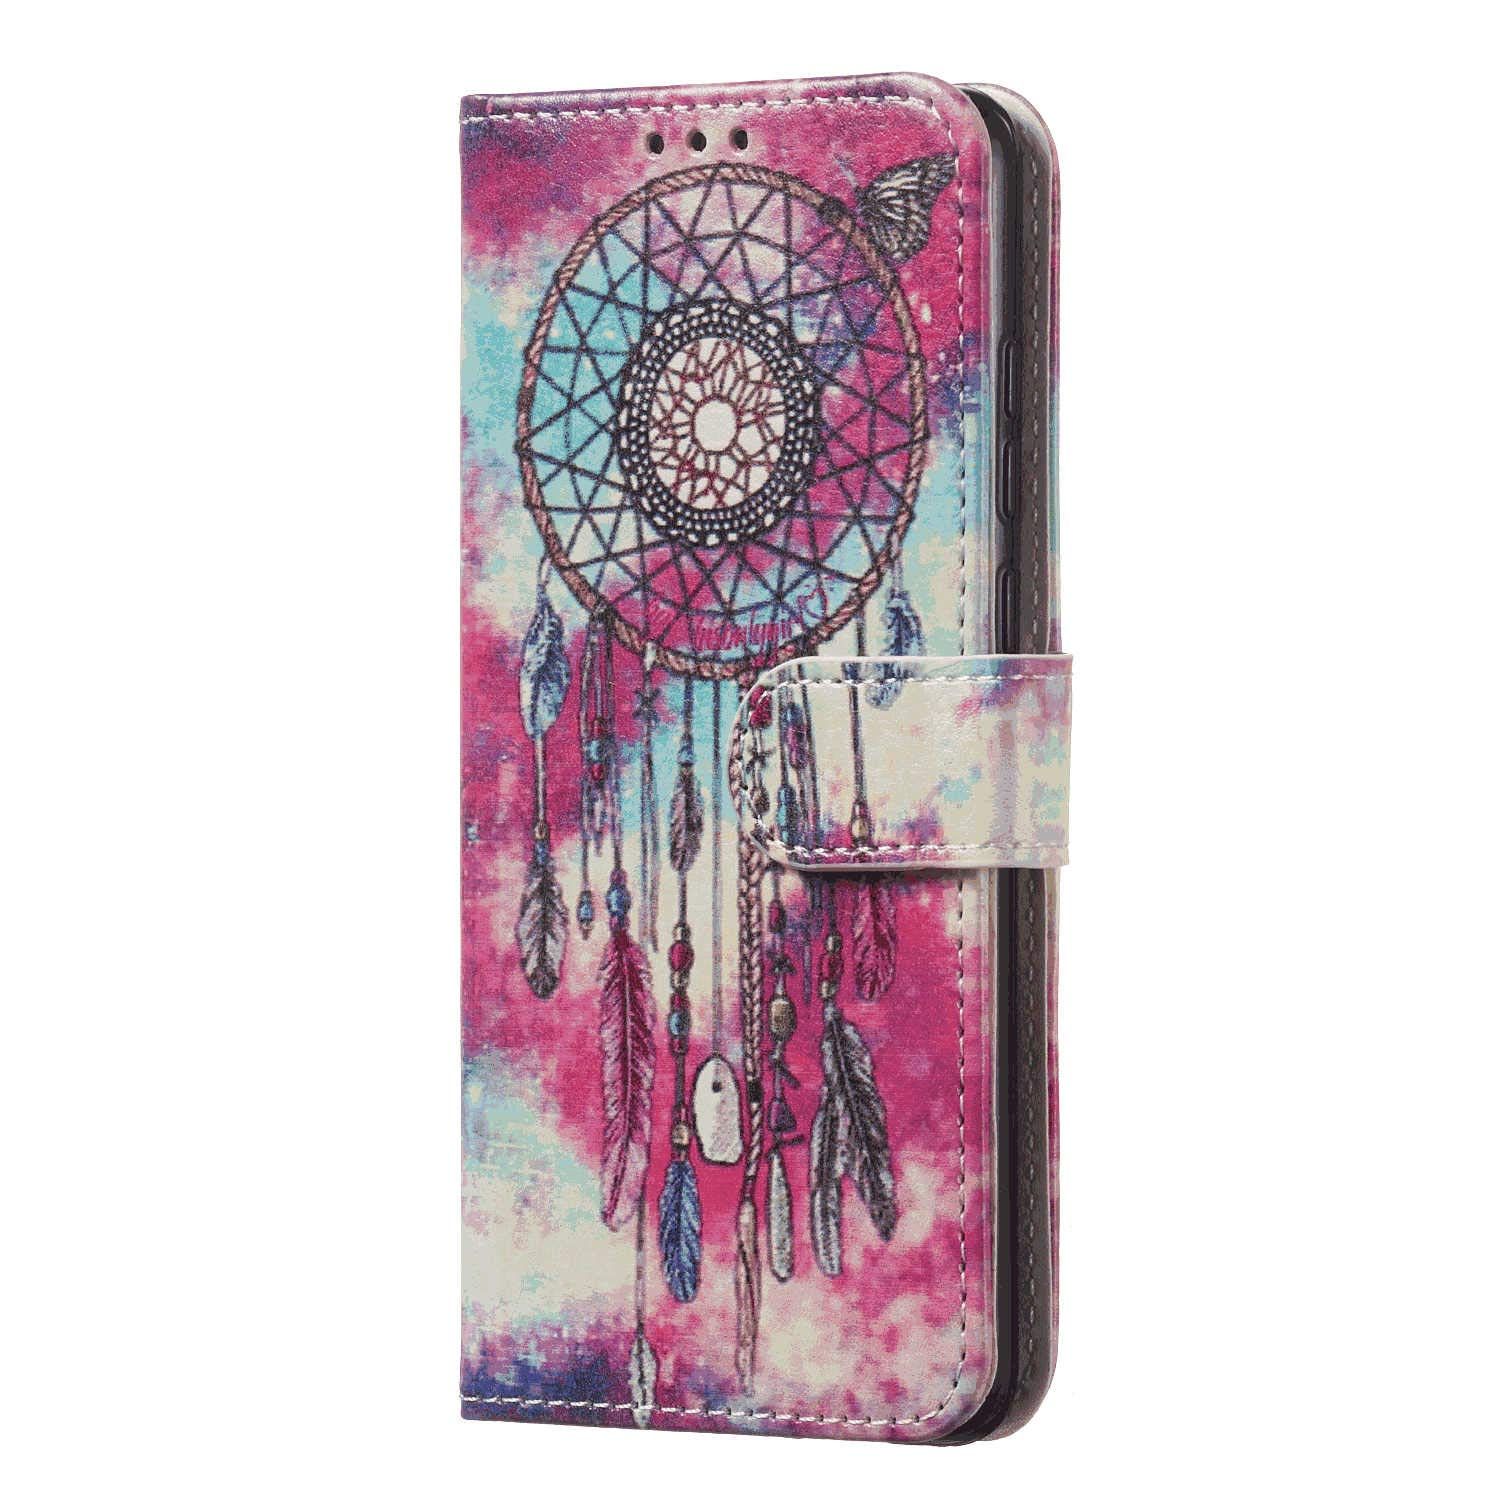 Elegant fashion5 Wallet Case for Samsung Galaxy S10e PU Leather Flip Cover Compatible with Samsung Galaxy S10e